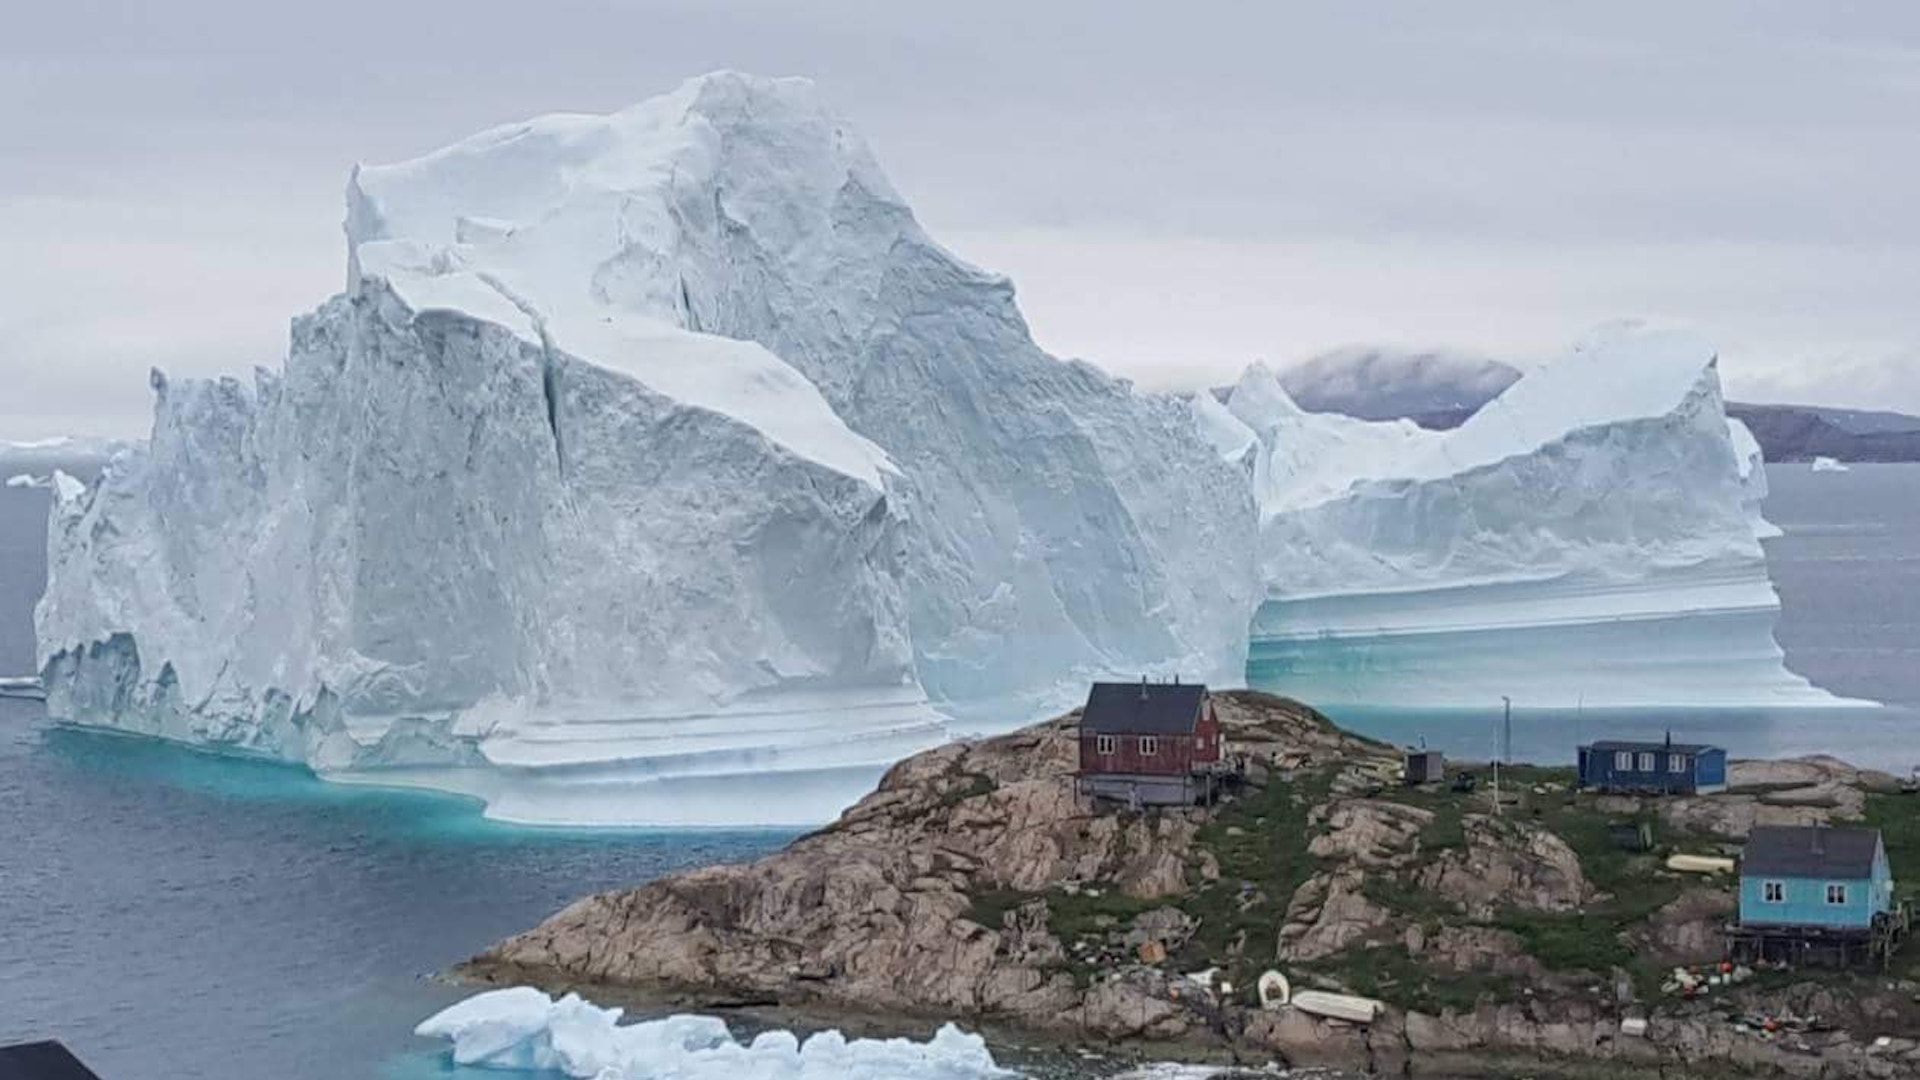 A picture taken on July 13, 2018 shows an iceberg behind houses and buildings after it grounded outside the village of Innaarsuit, Greenland.